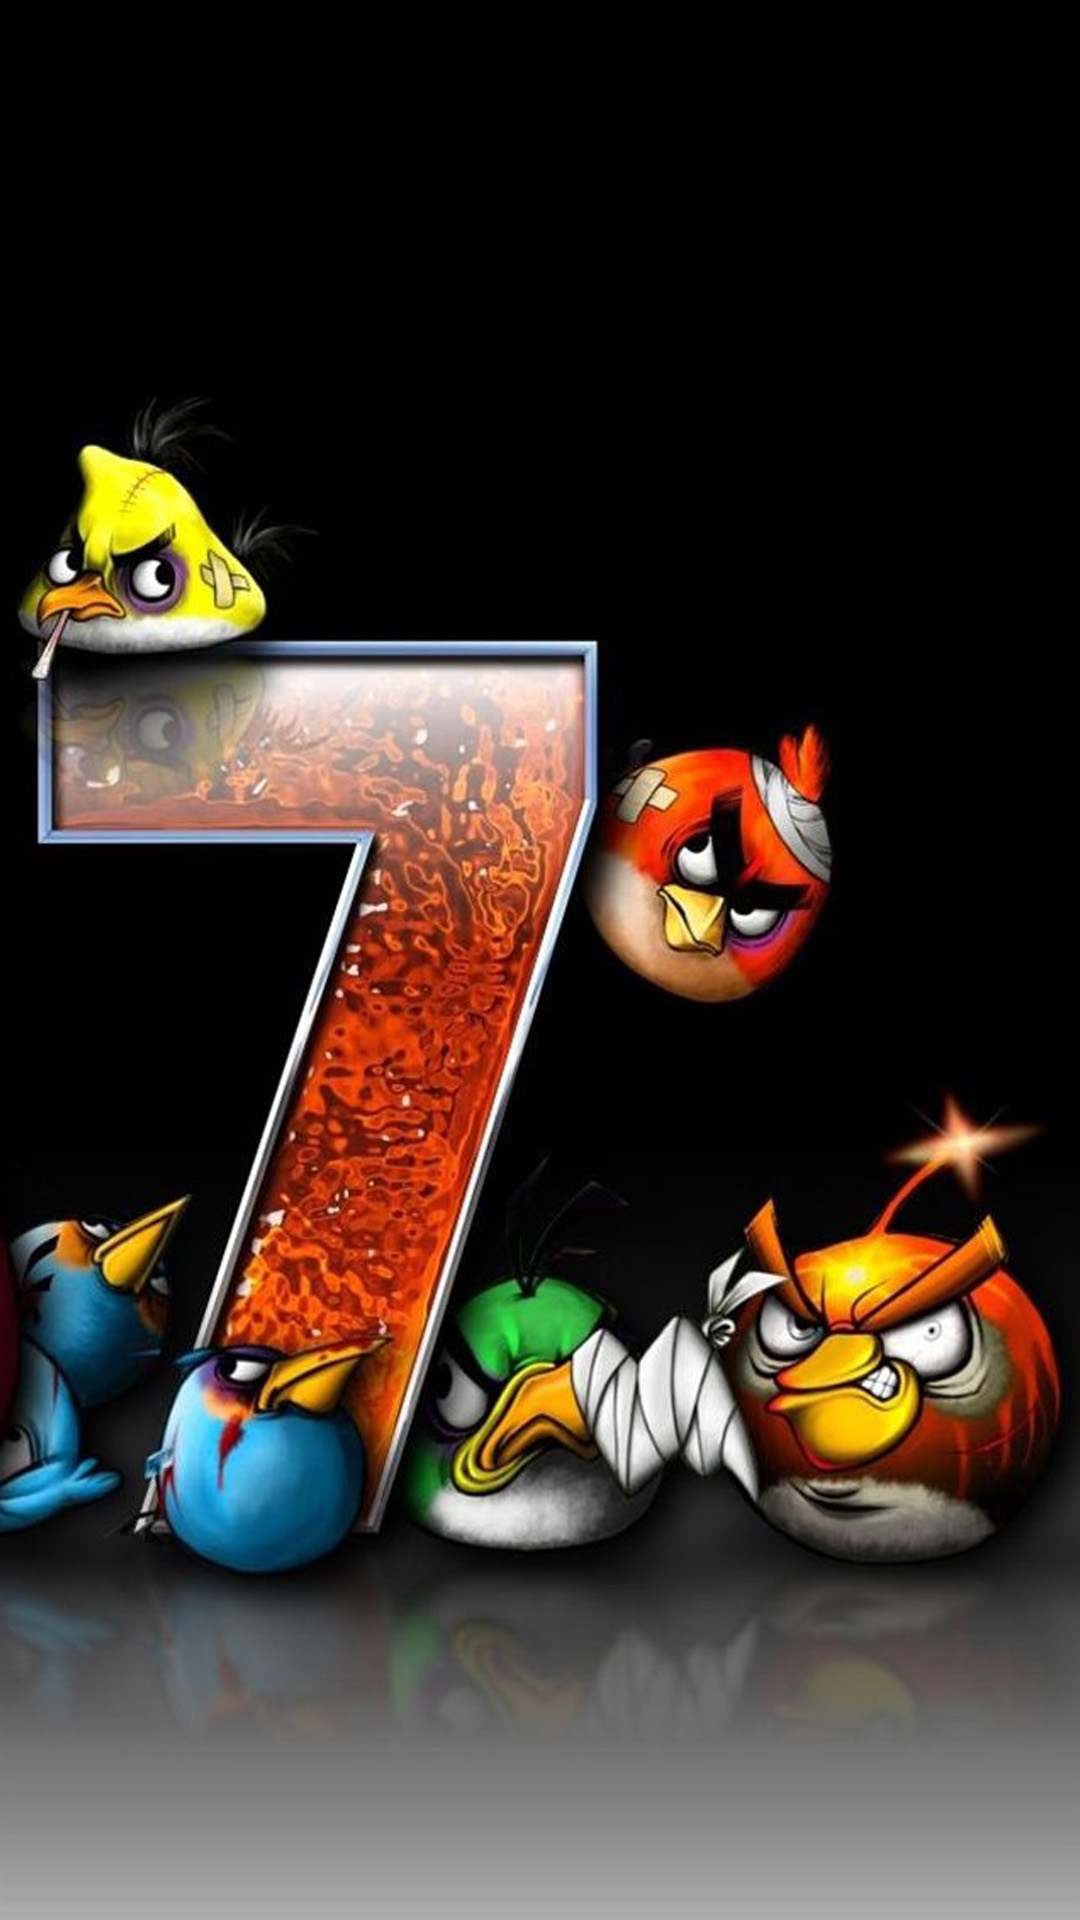 Angry Birds 7 Android wallpaper